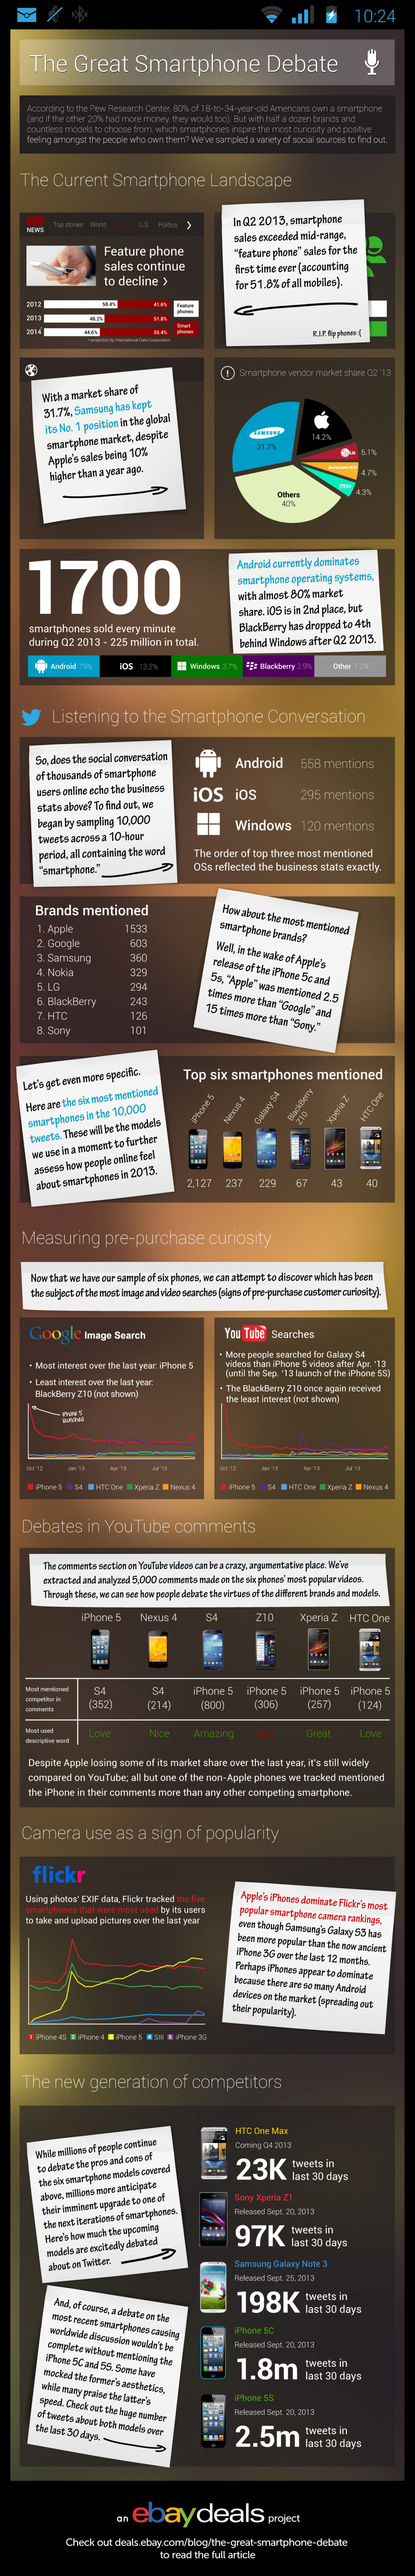 The Great Smartphone Debate Infographic